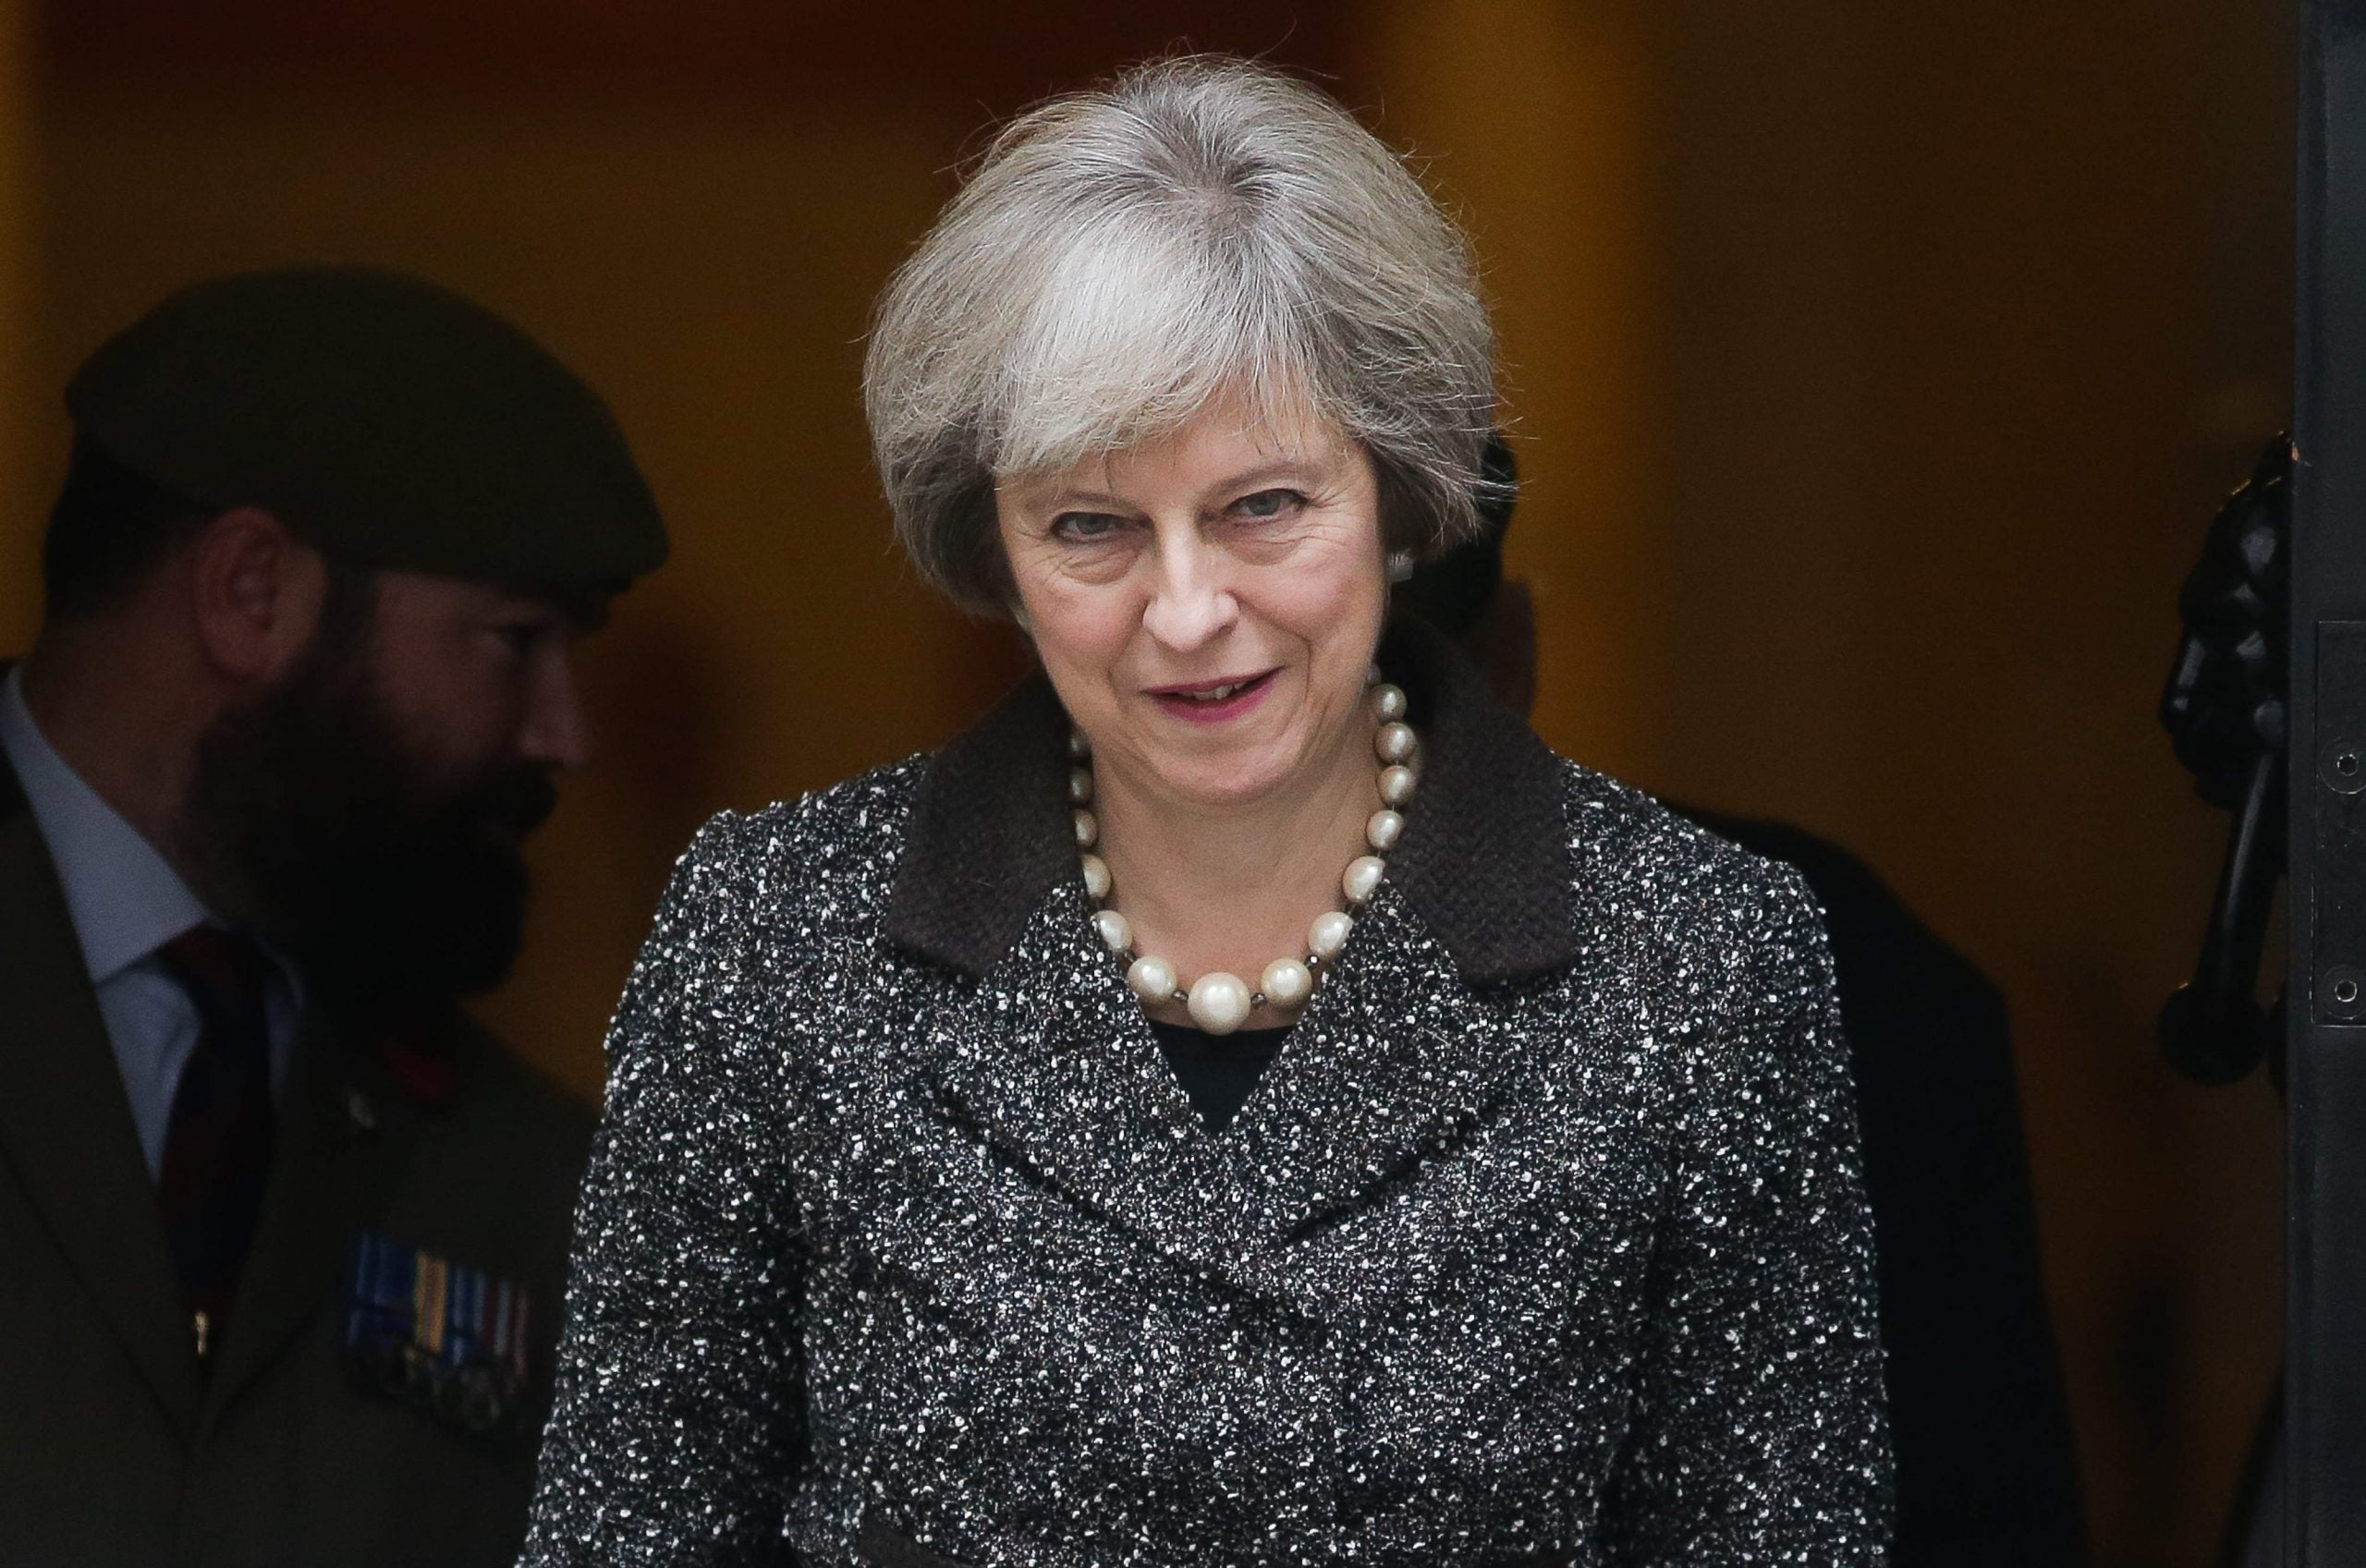 On Brexit, Theresa May should embrace Parliament's inclusive sovereignty